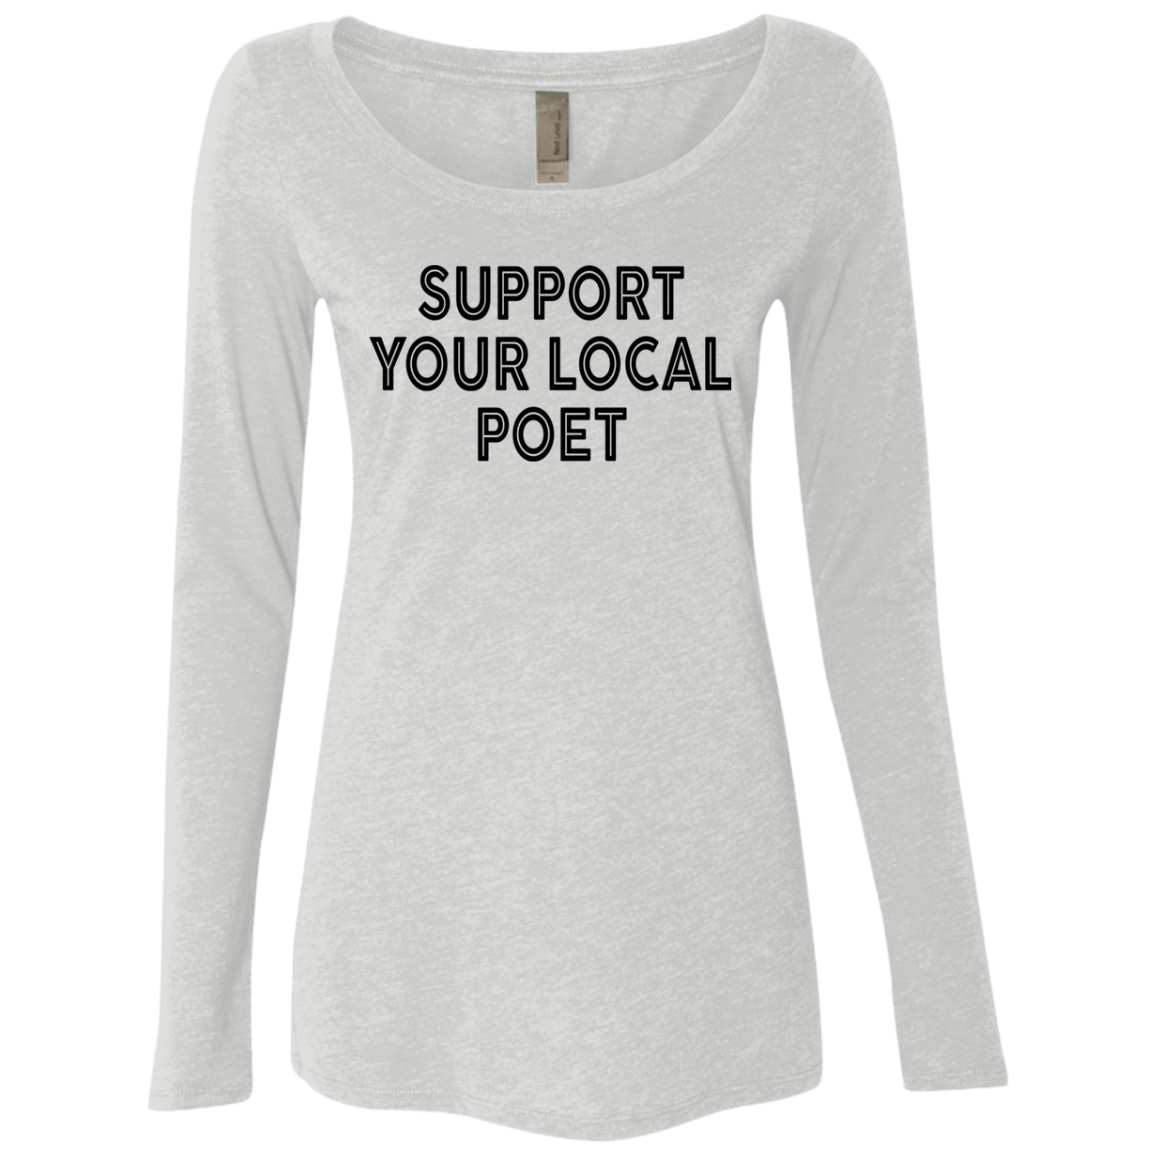 Support Your Local Poet Women's Long Sleeve Tee